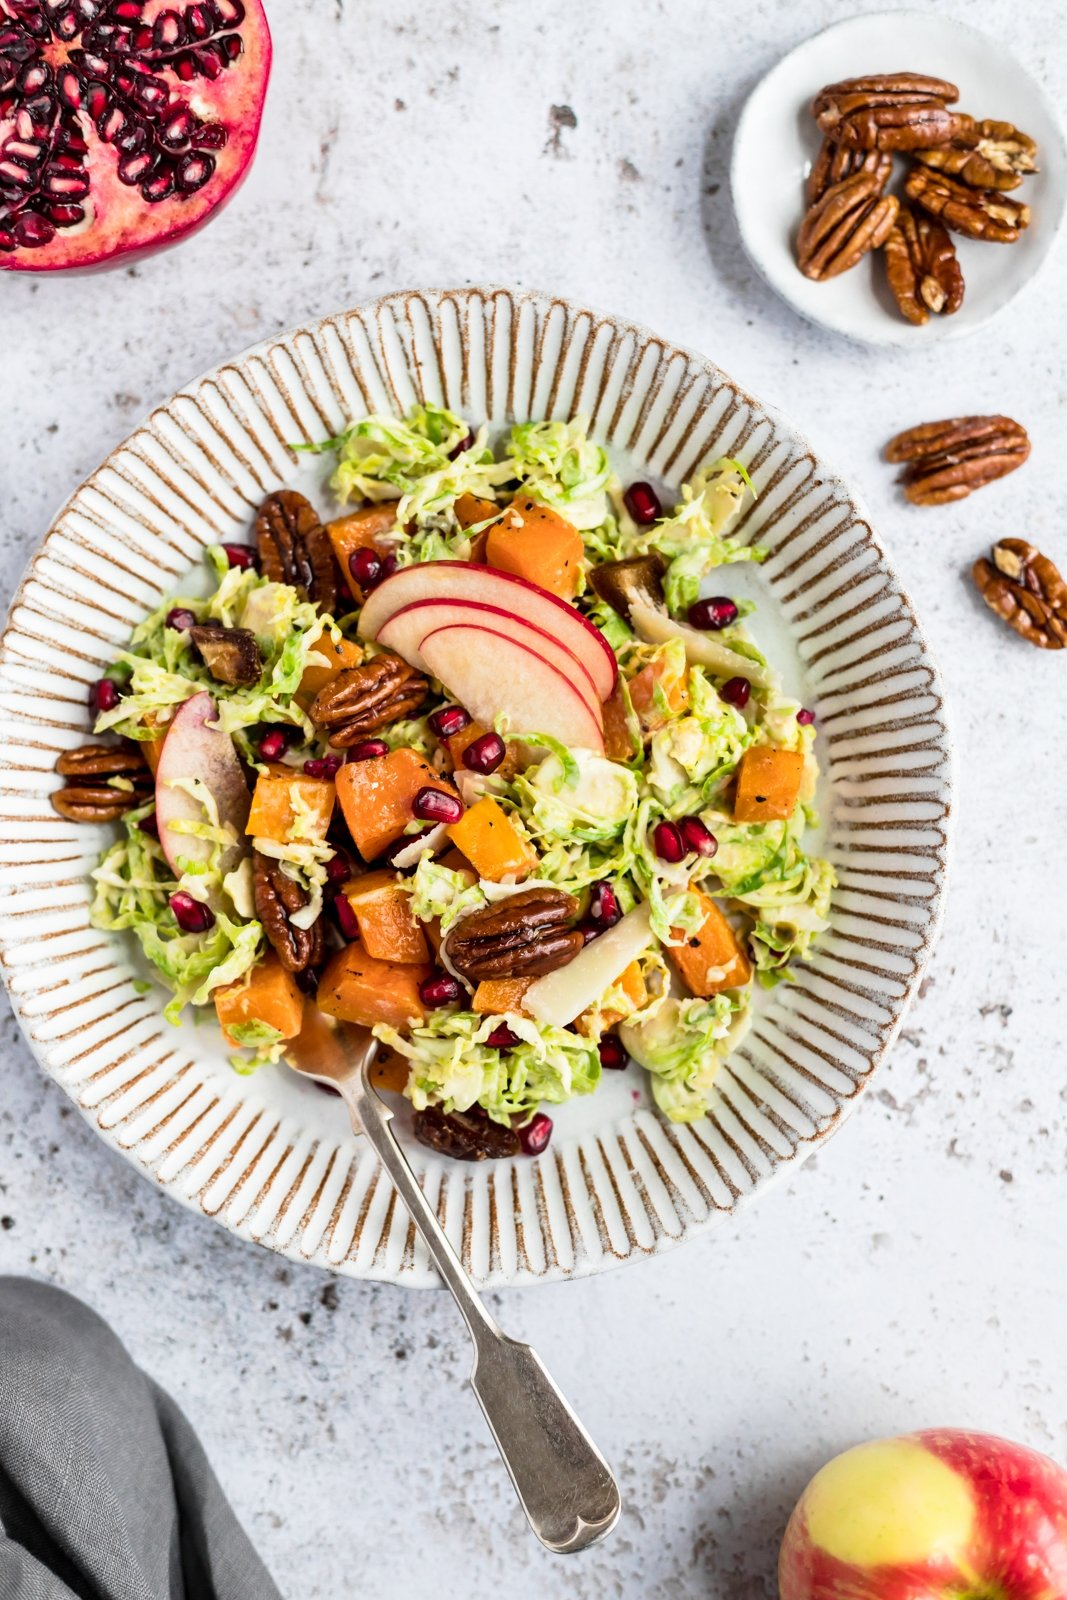 brussels sprouts caesar salad with apples and butternut squash on a plate